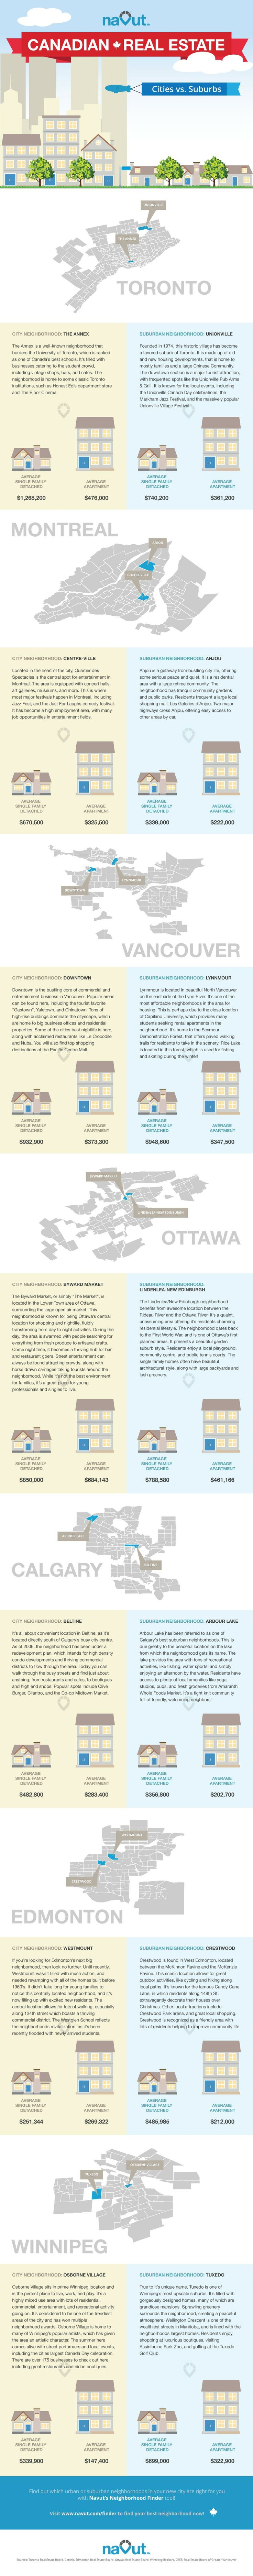 Infographic: Canadian Real Estate, Cities vs. Suburbs